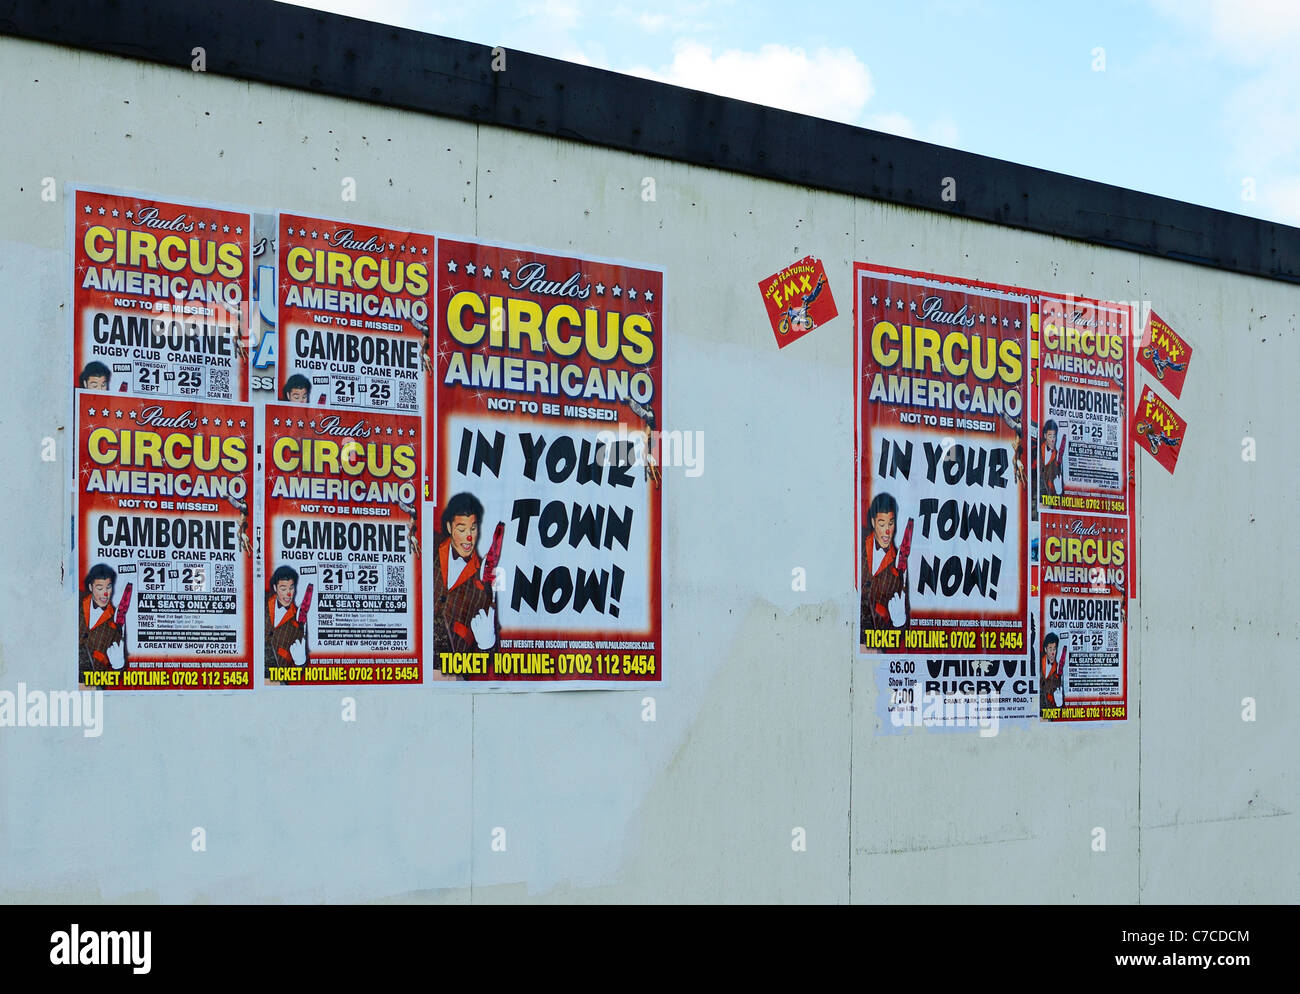 Posters advertising a visiting circus in Camborne, Cornwall, UK - Stock Image